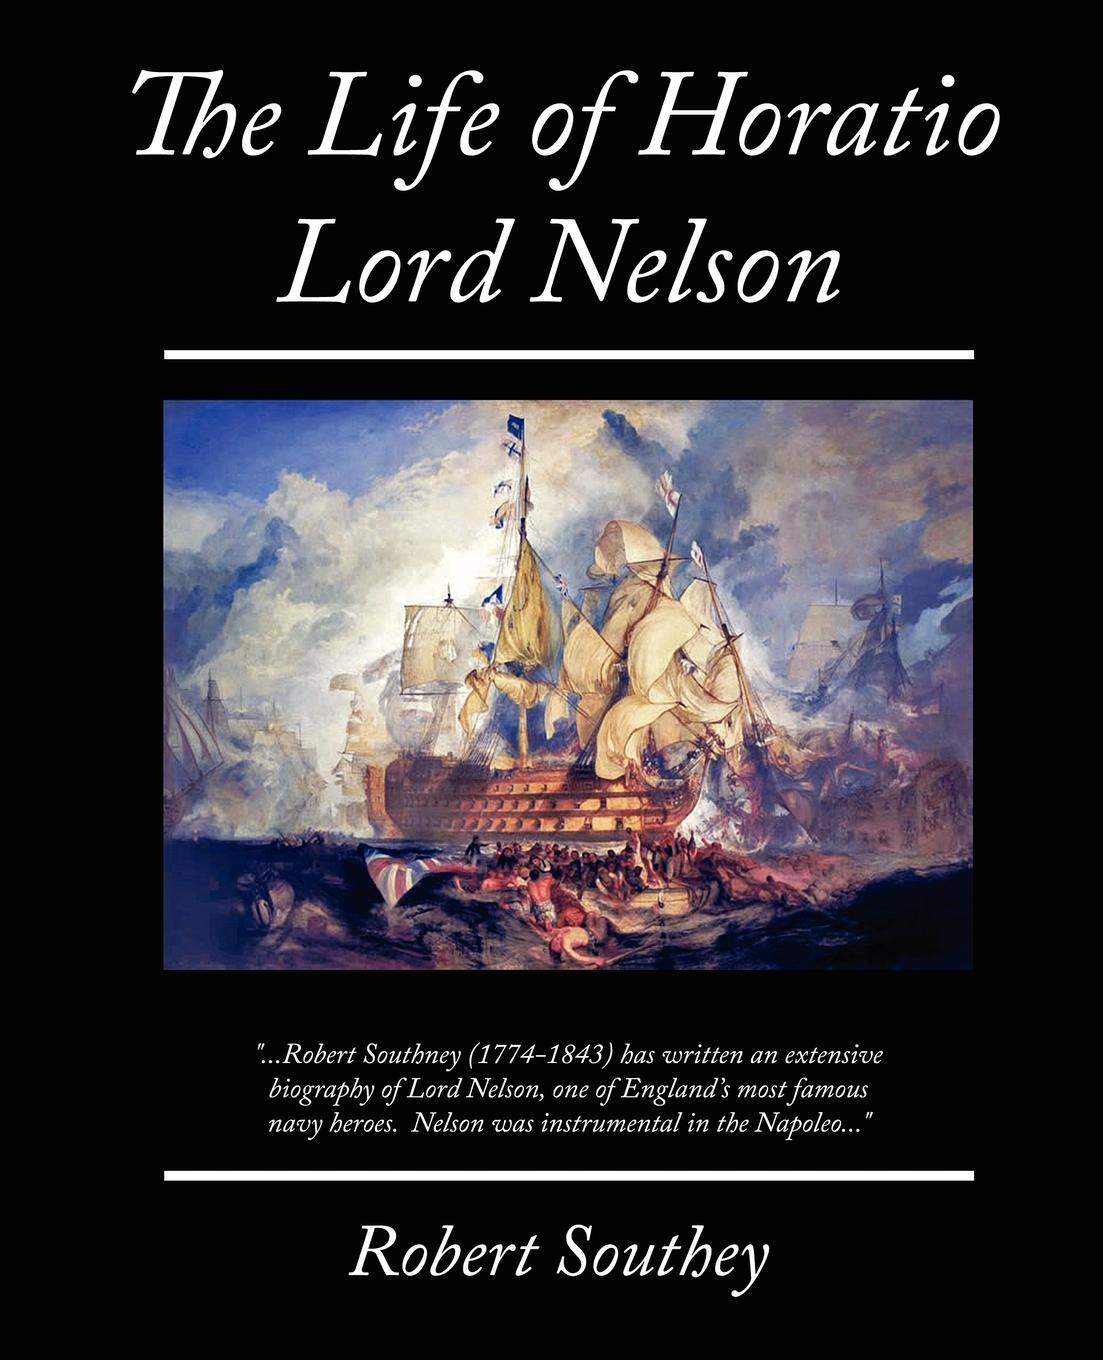 Robert Southey The Life of Horatio Lord Nelson ileen bear nelson mandela a biography